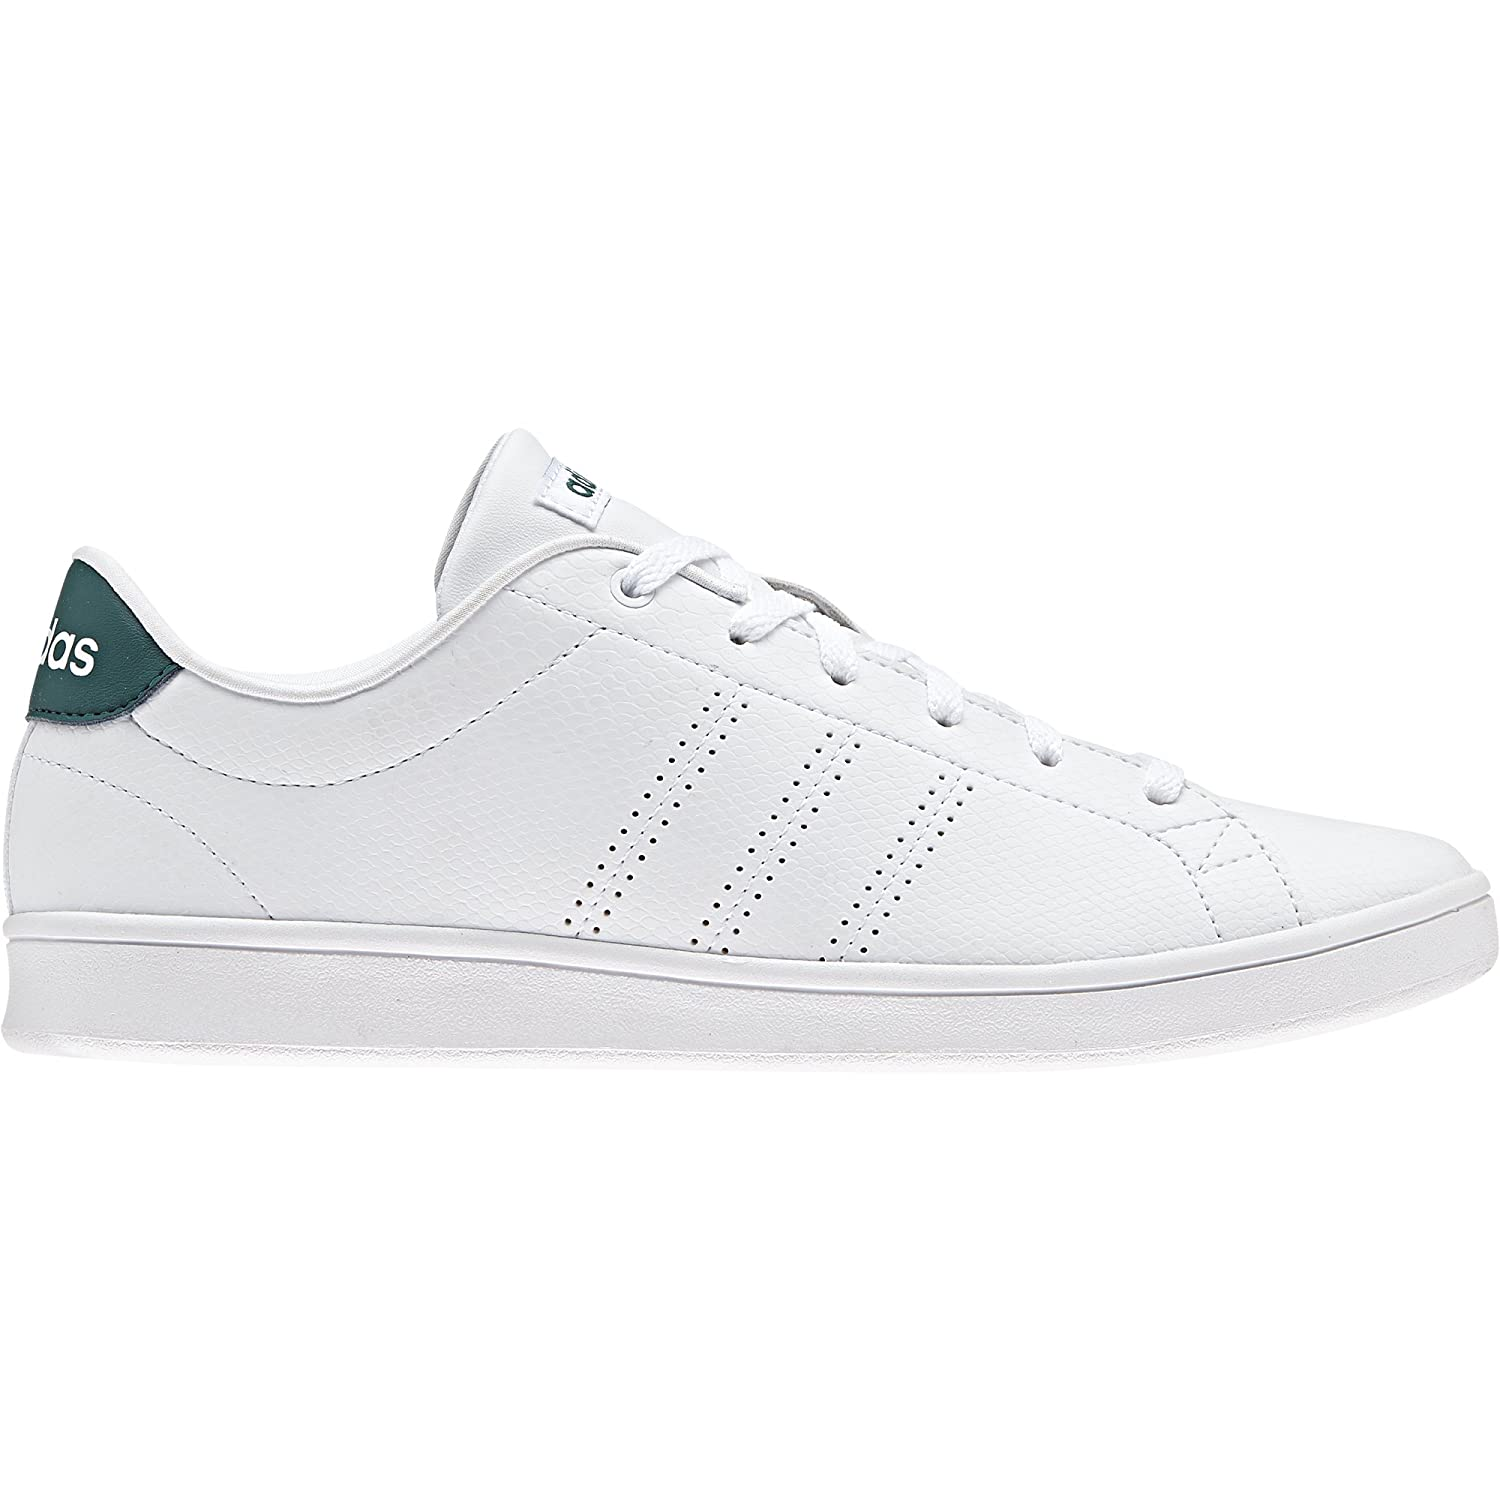 dfc8ba375ff Adidas Baby-Boys Advantage Clean QT Sneakers: Amazon.ca: Shoes & Handbags